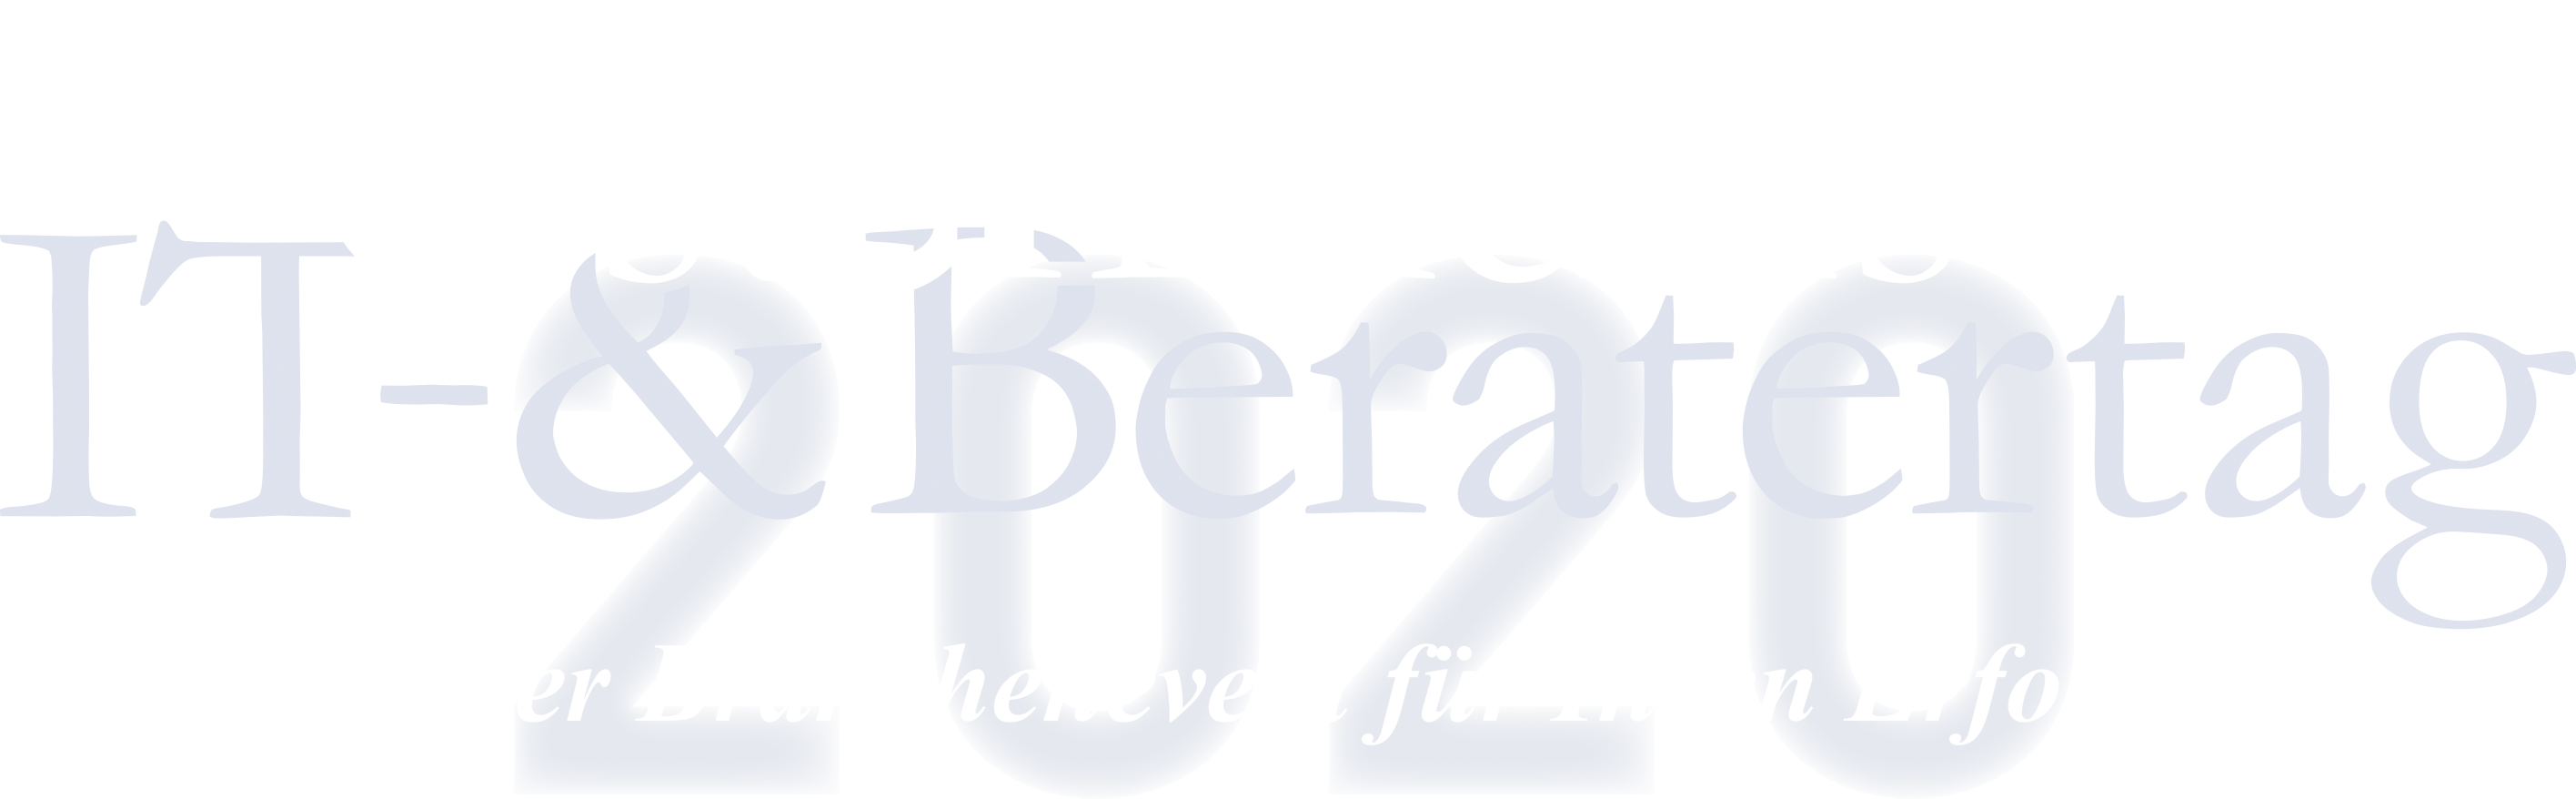 Beratertag Logo